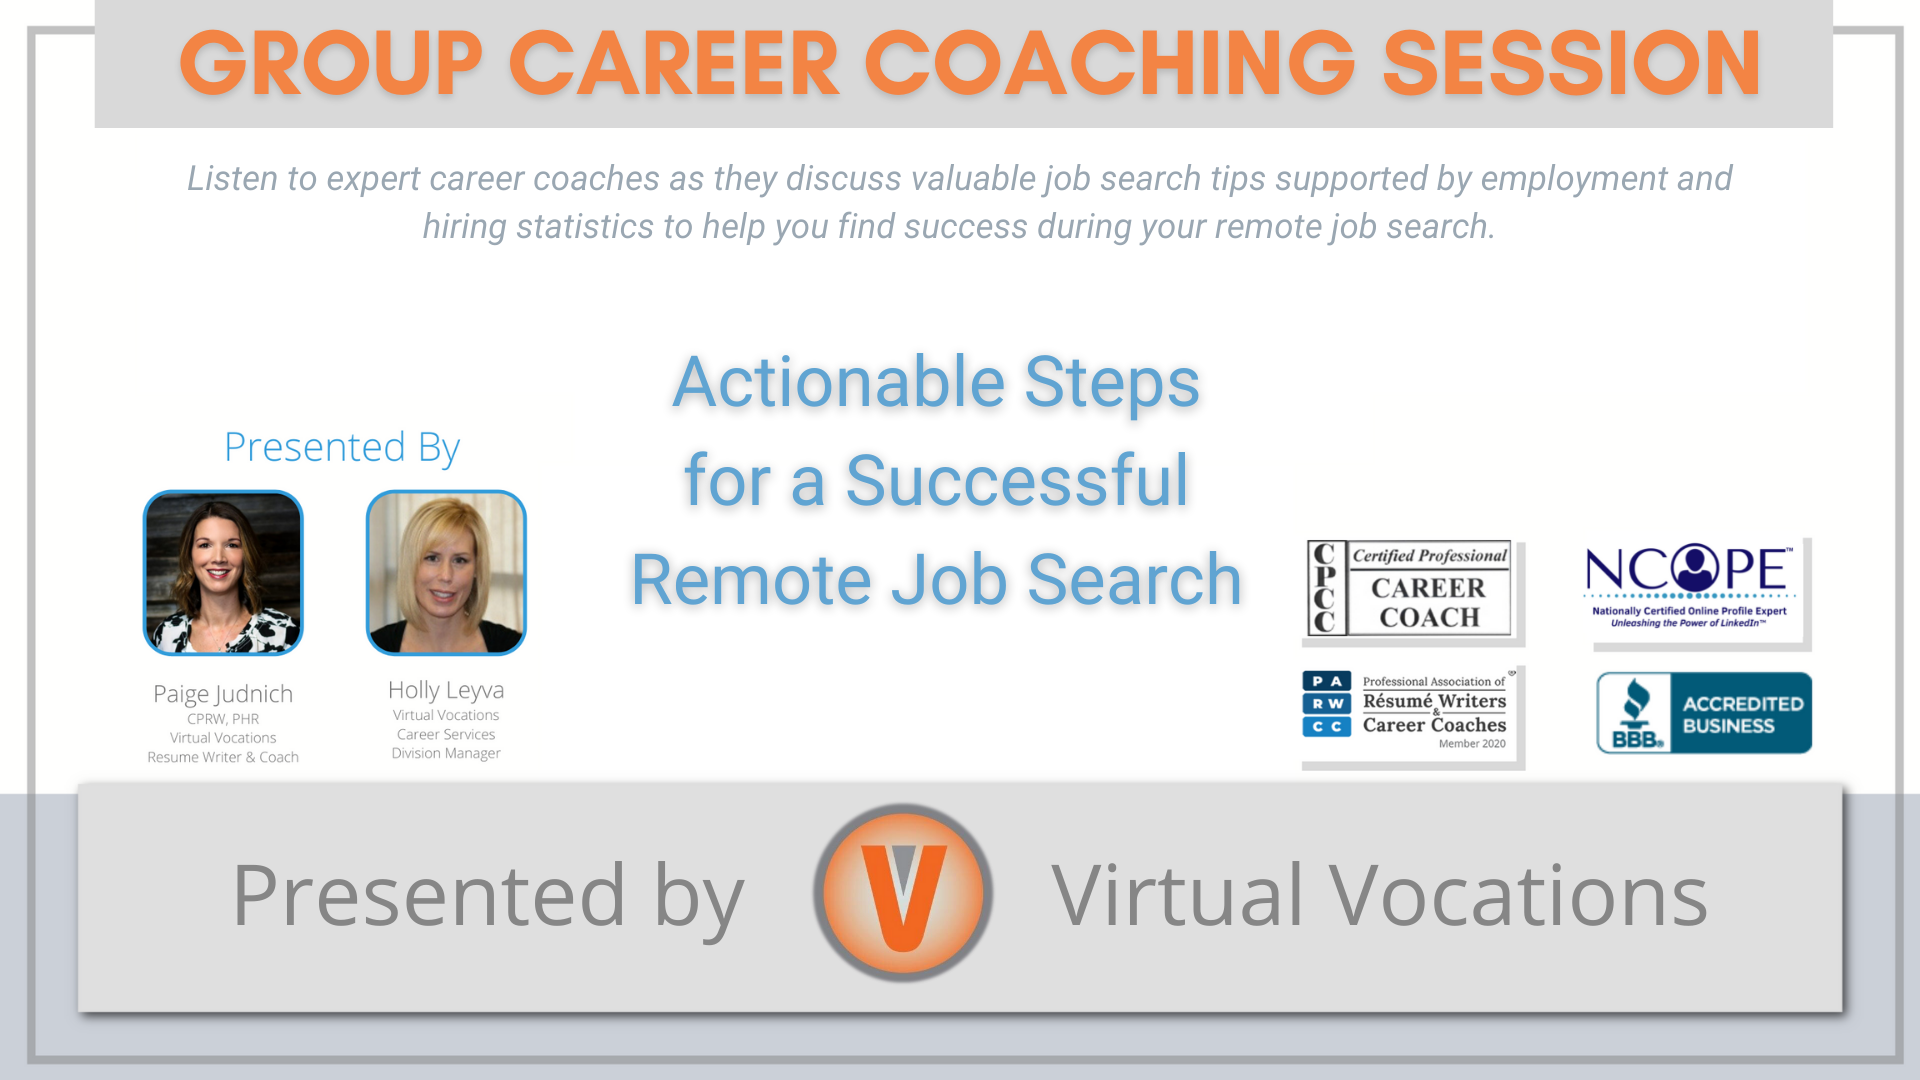 Actionable Steps for a Successful Remote Job Search